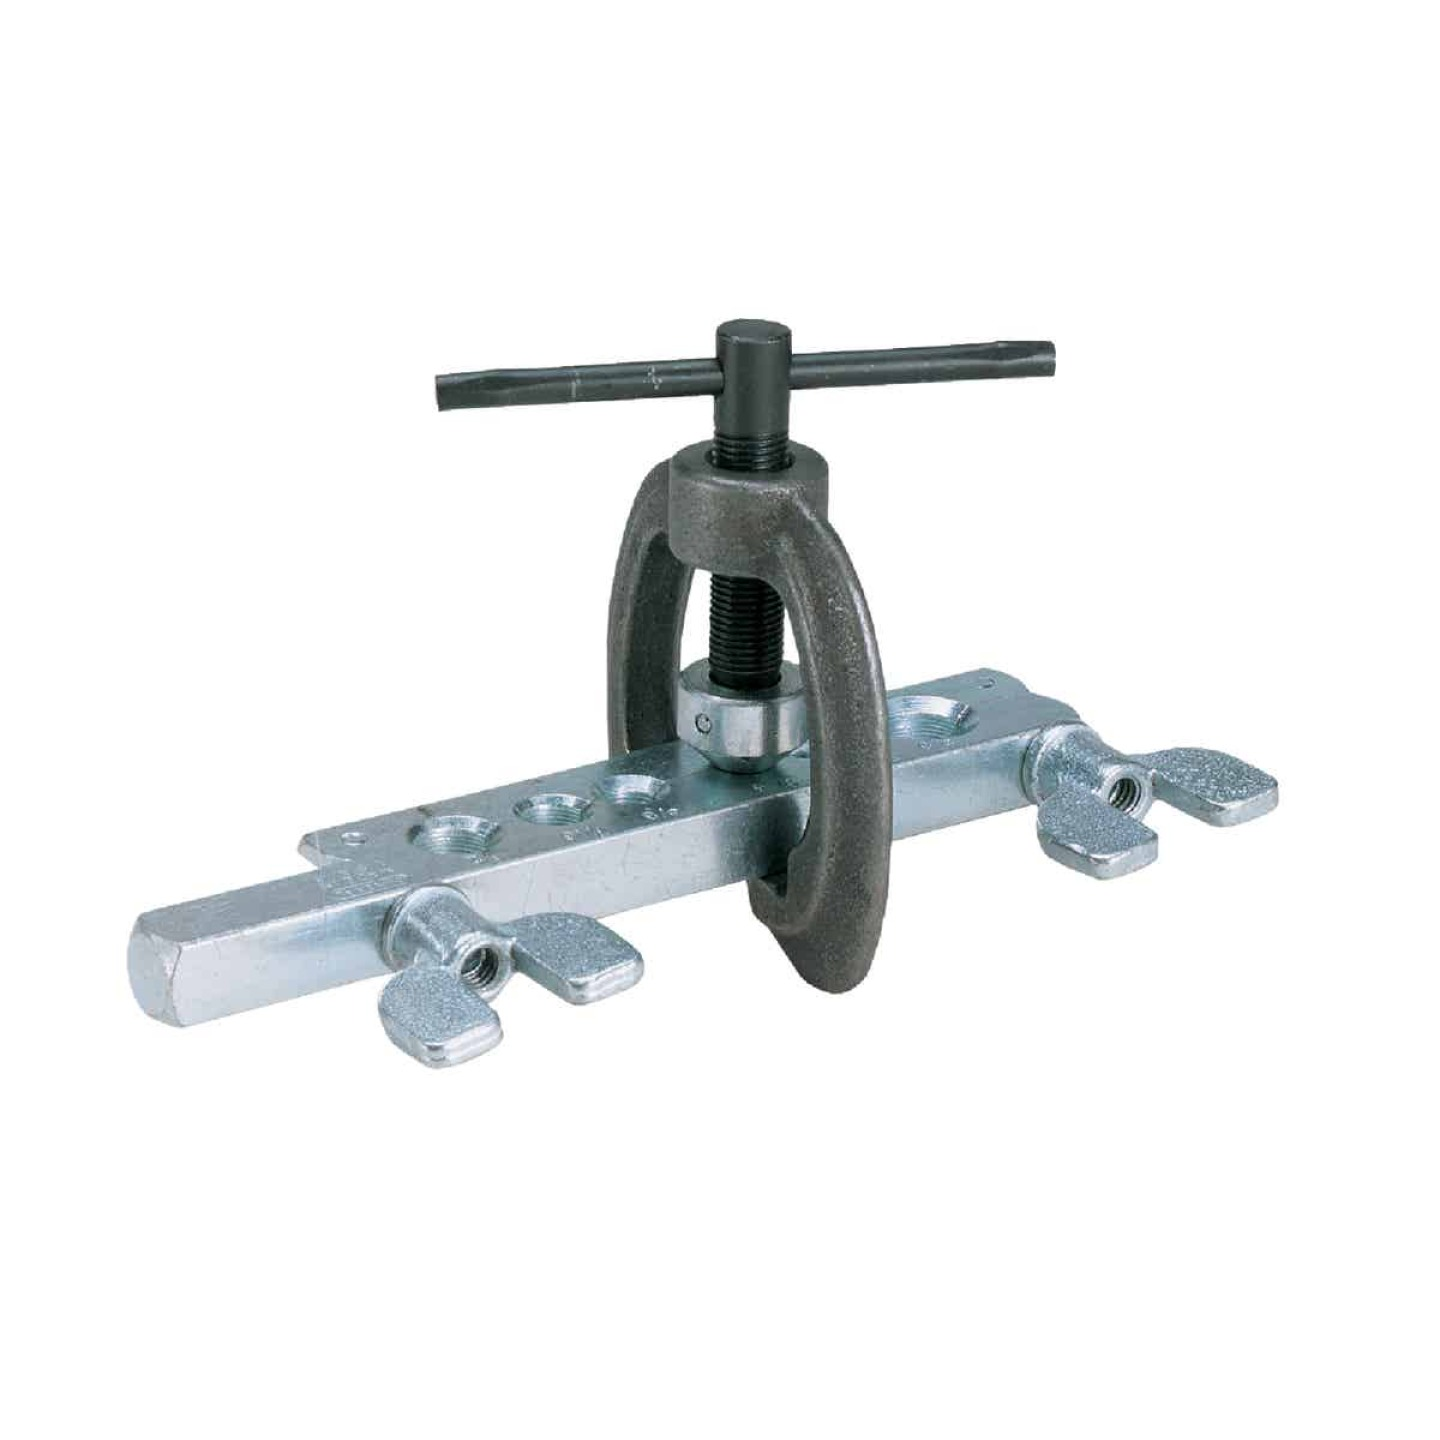 General Tools T-handle Flaring Tool, 3/16 In. to 5/8 In. Image 1